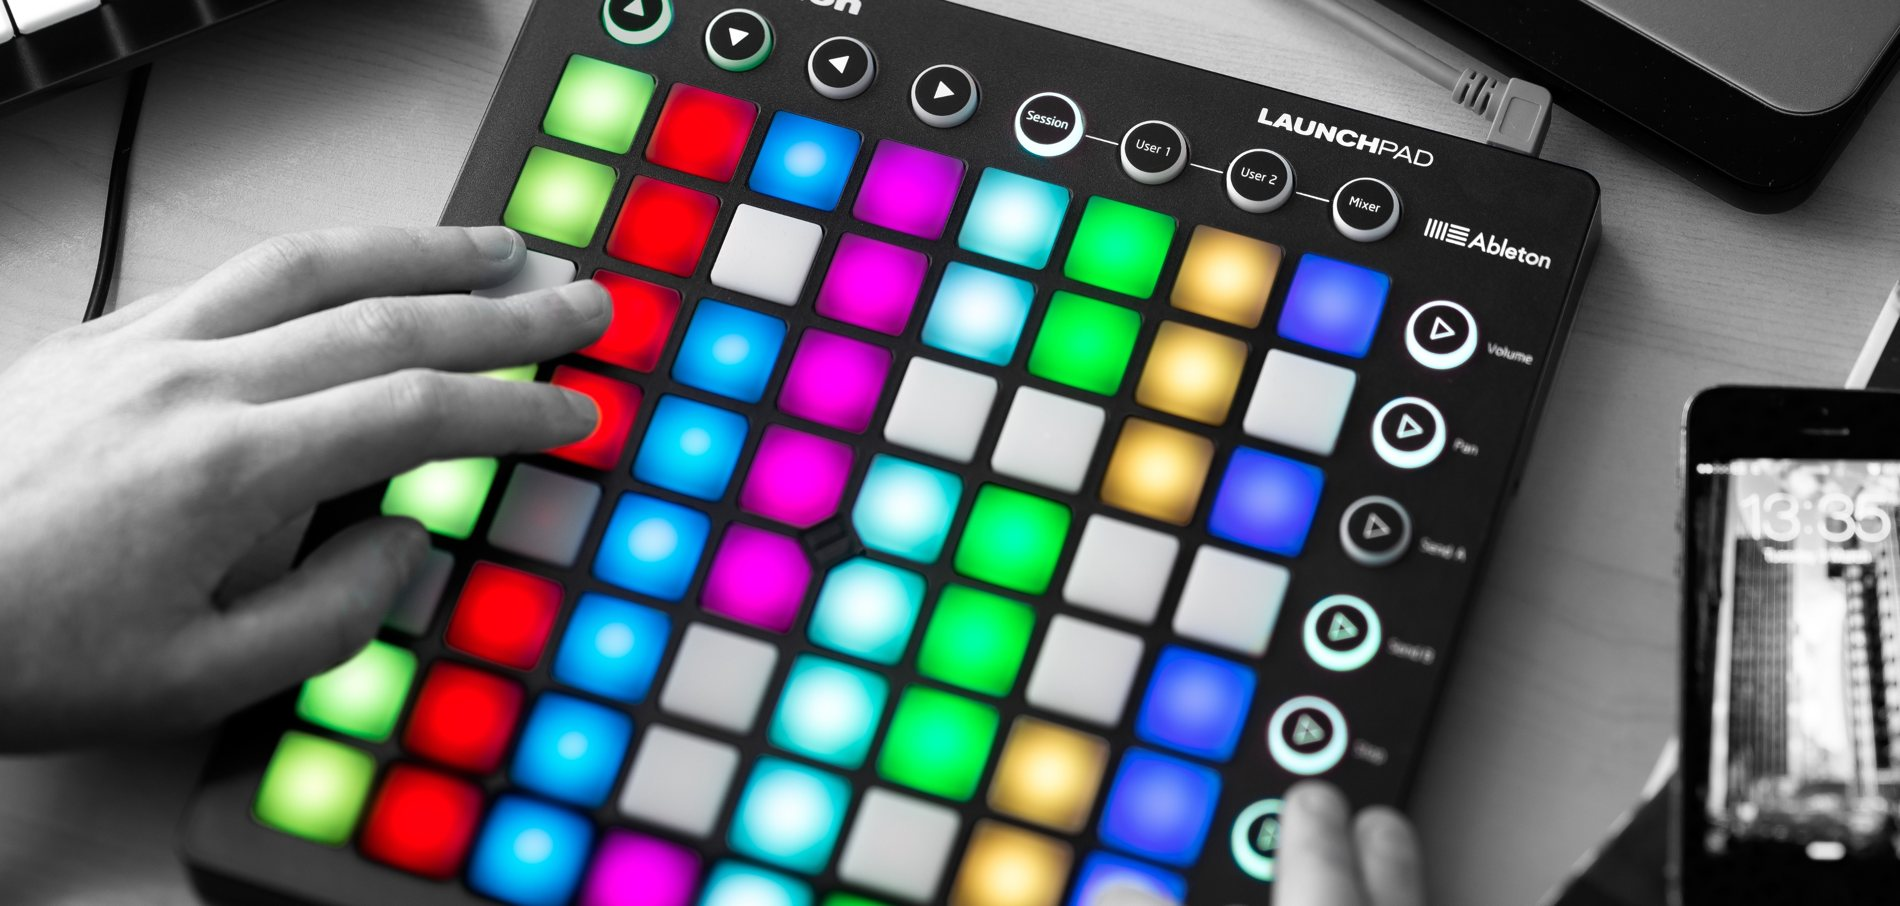 novation 39 s launchpad grid now in color for ableton or ipad create digital music. Black Bedroom Furniture Sets. Home Design Ideas